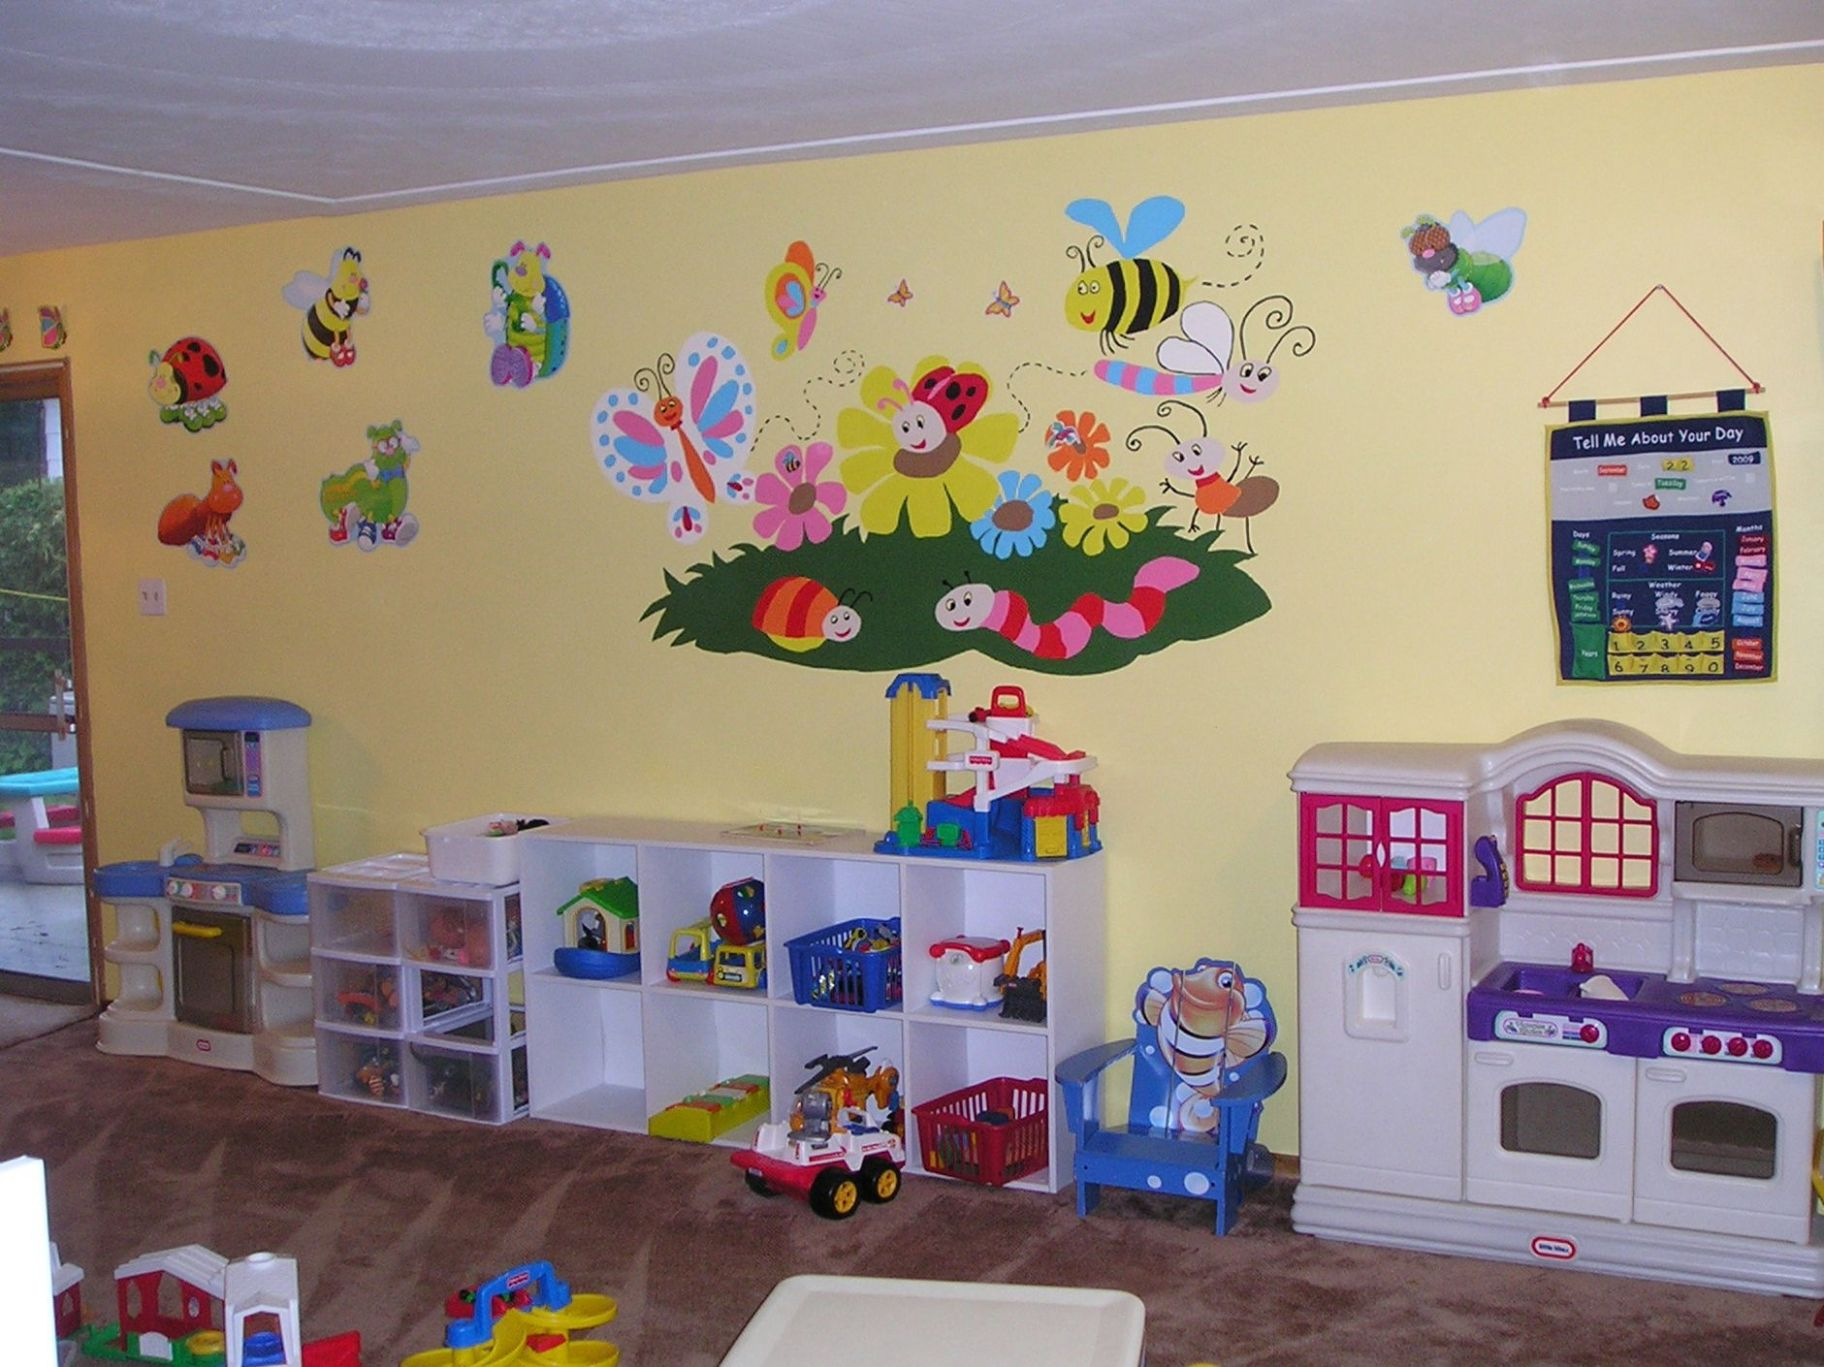 Decorating ideas for daycare rooms (With images) | Daycare decor